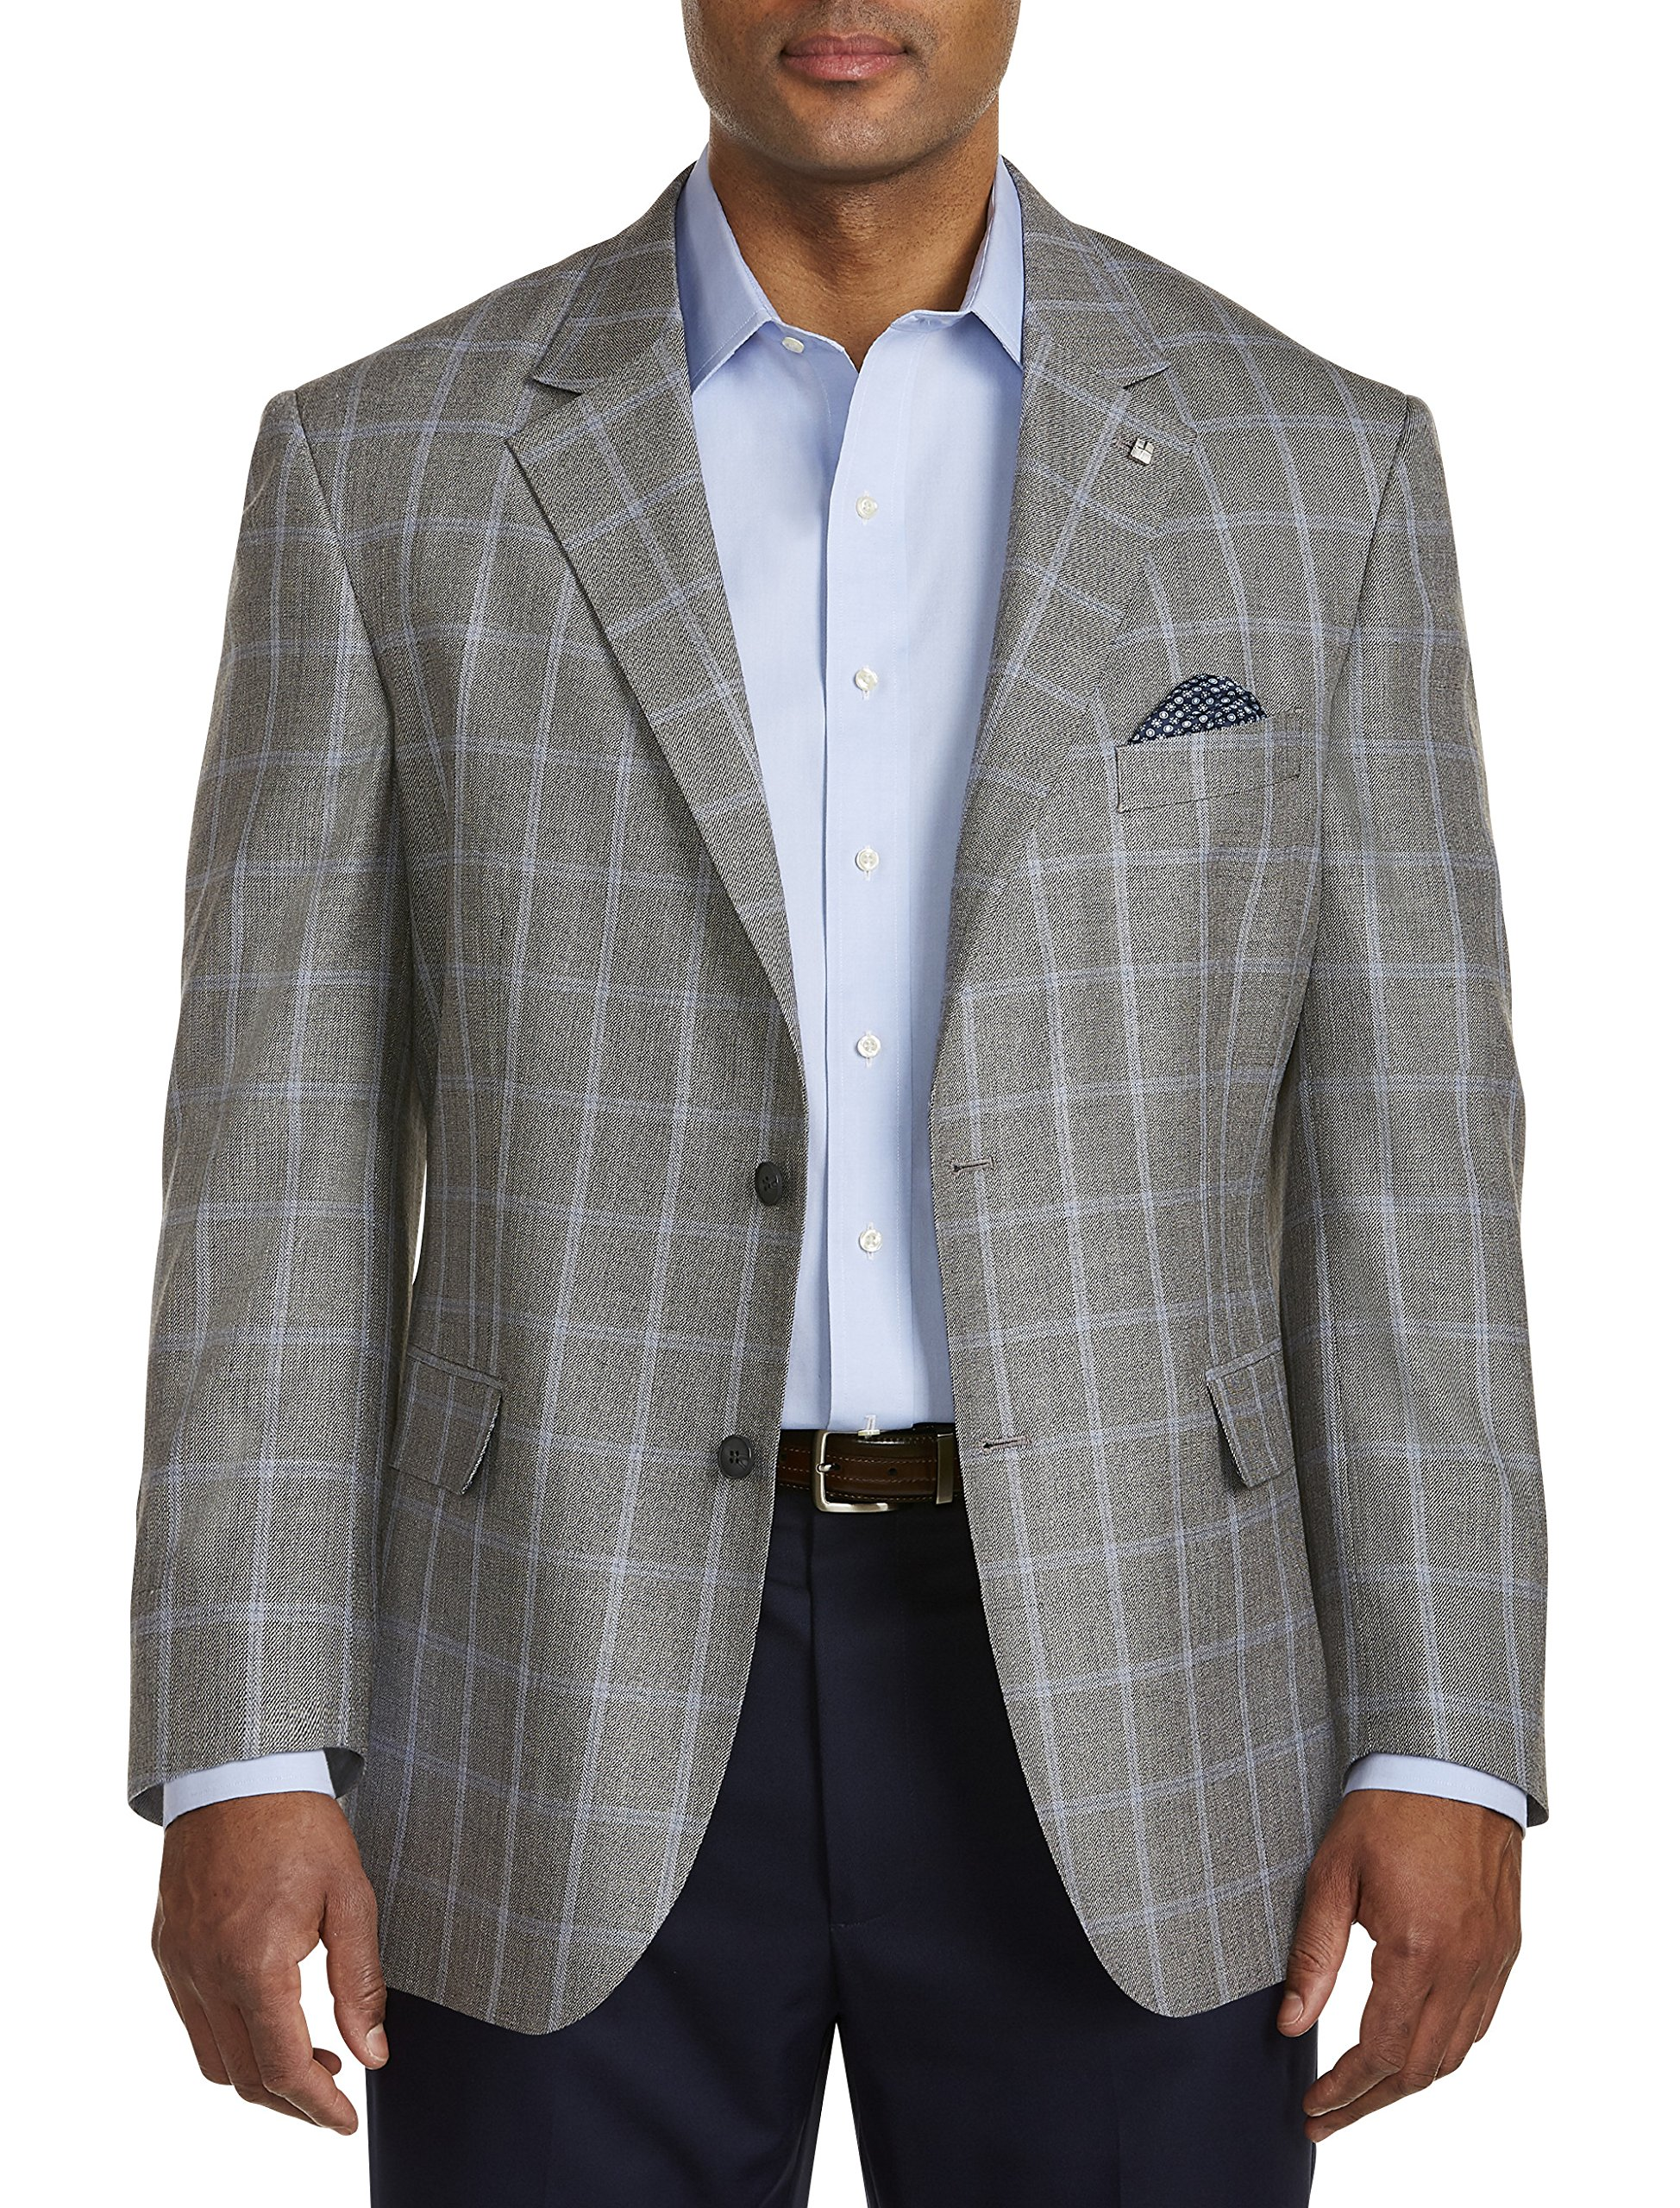 Oak Hill by DXL Big and Tall Jacket-Relaxer Textured Windowpane Sport Coat Executive Cut